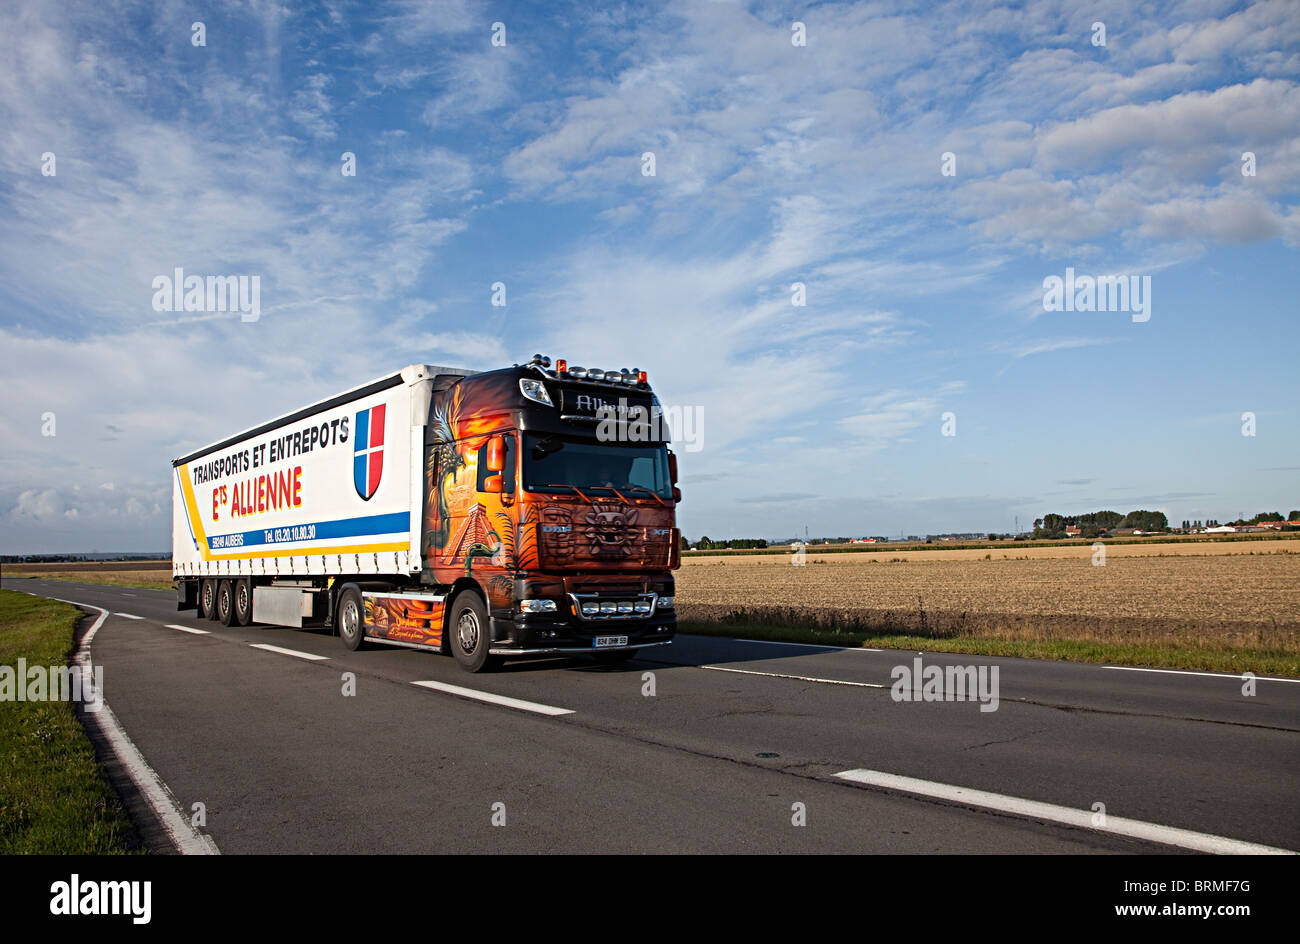 Transport lorry in northern France - Stock Image